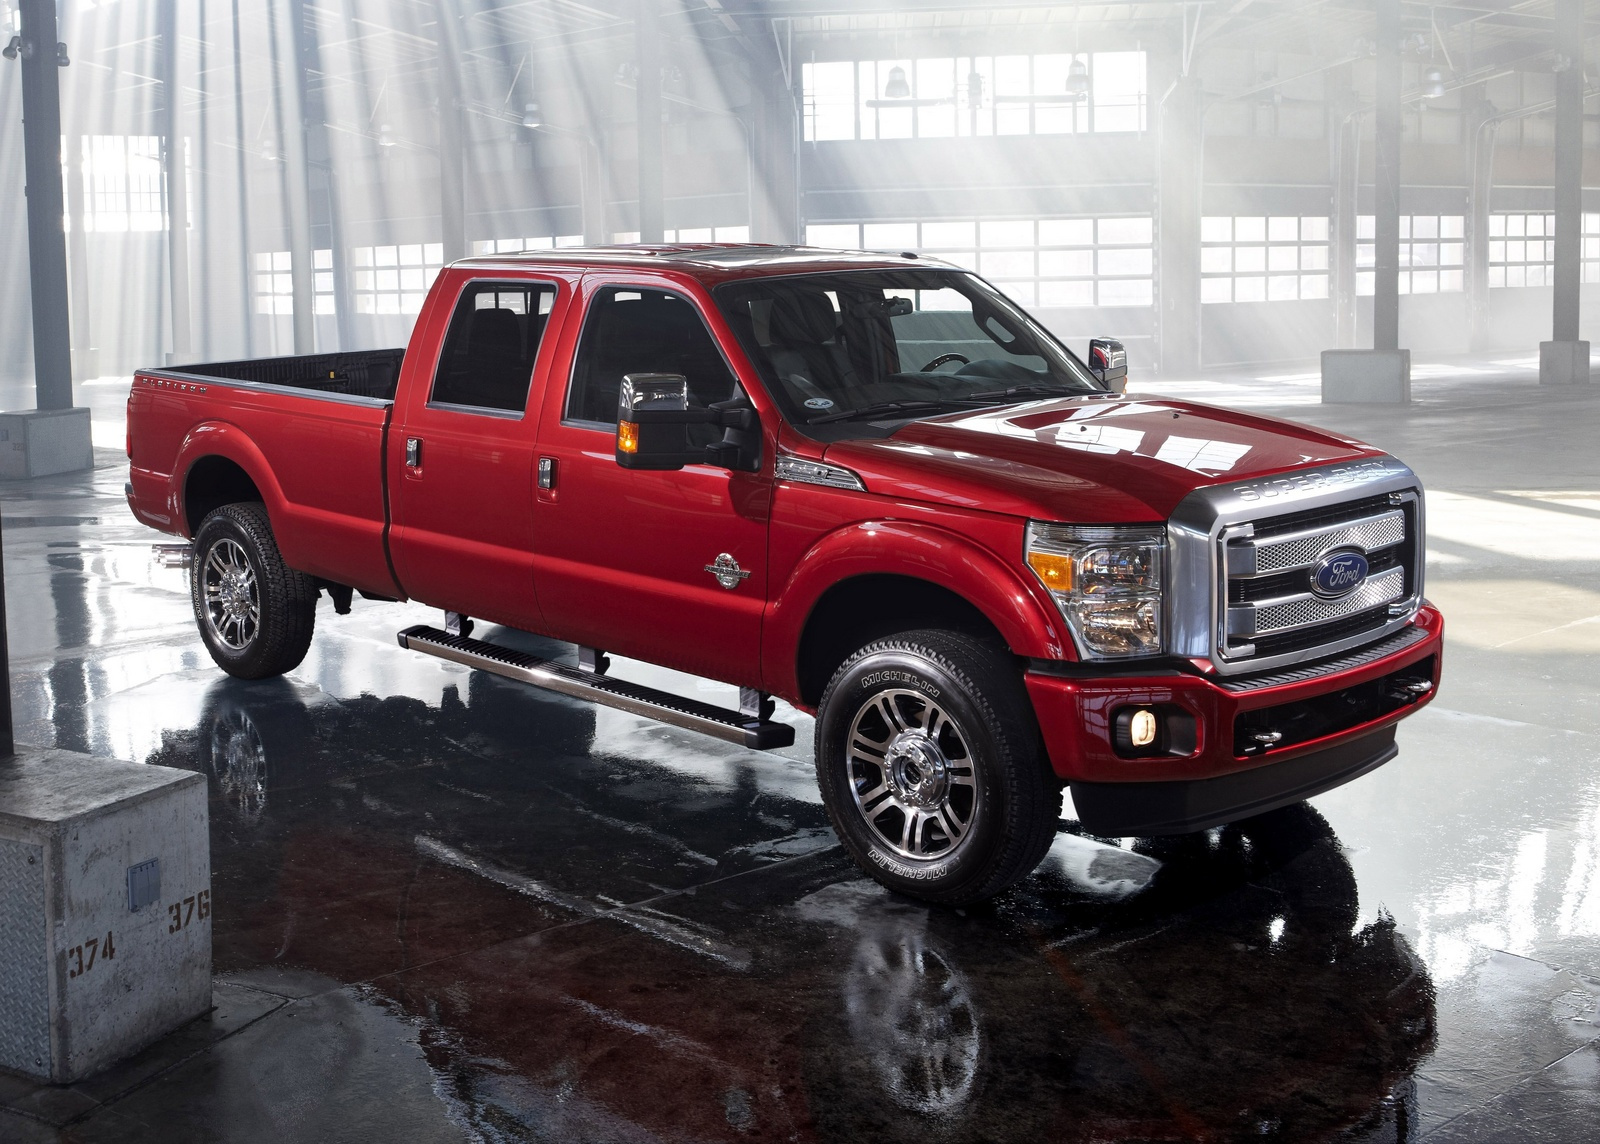 2014 Ford F-350 Super Duty - Overview - CarGurus